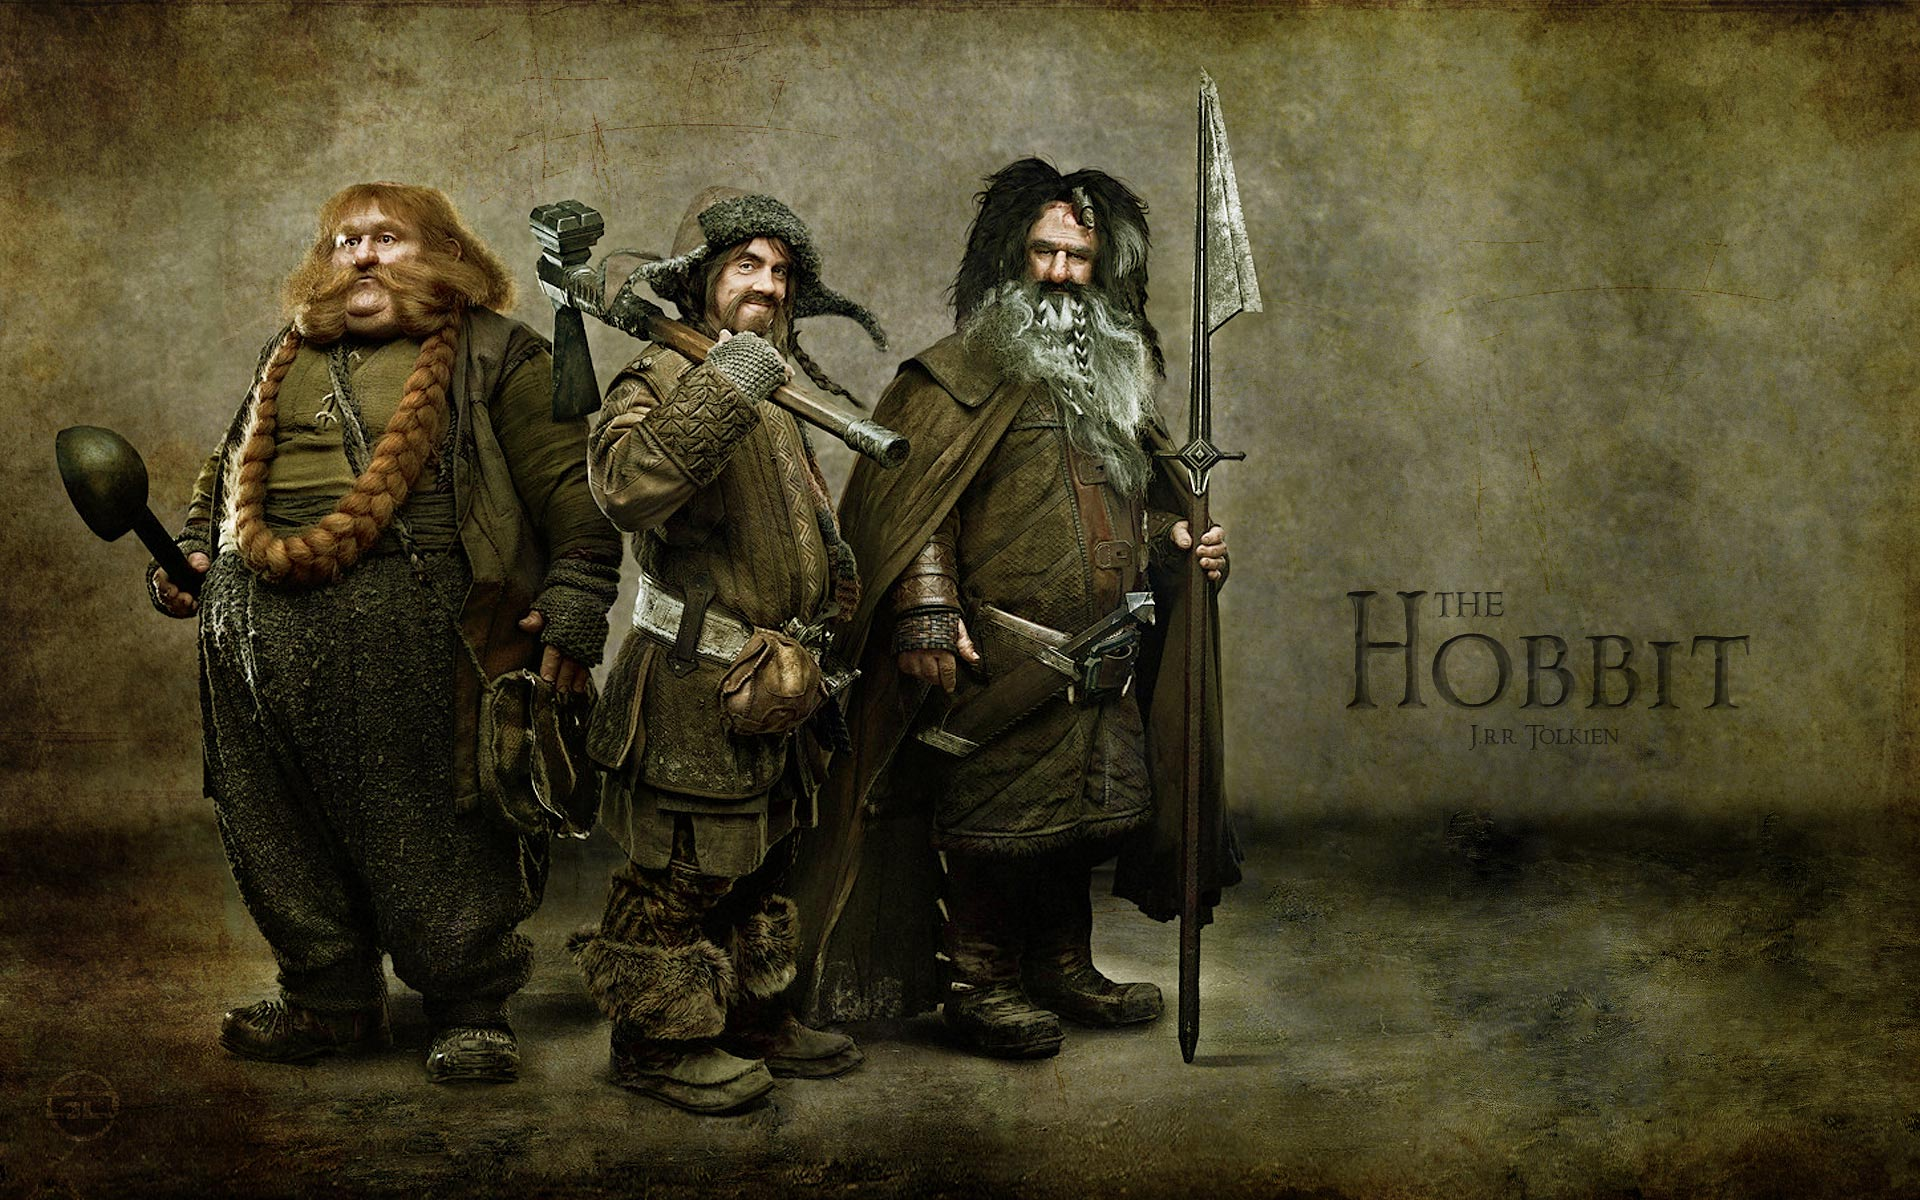 The Hobbit An Unexpected Journey images the hobbit bombur bofur 1920x1200